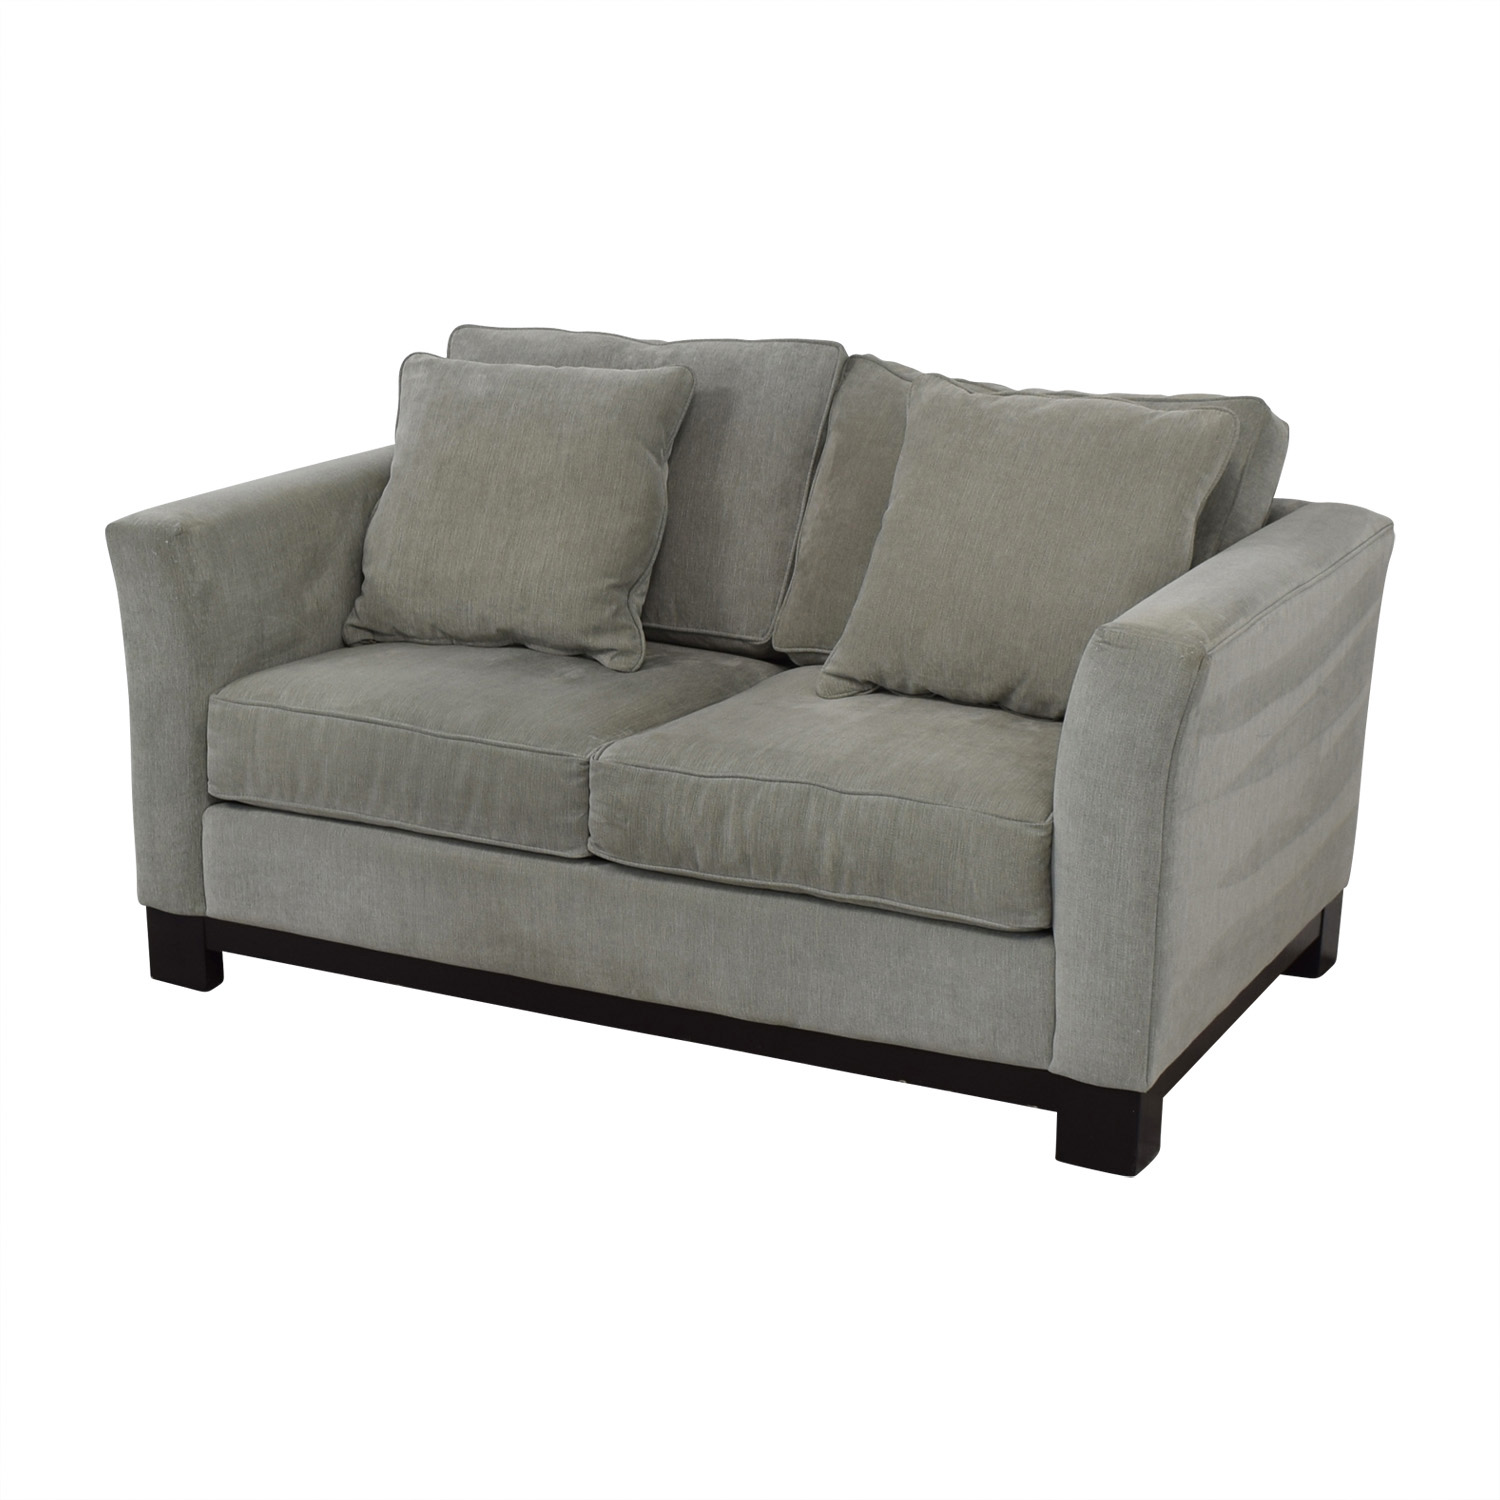 Macys Sofas And Loveseats New Savings On Myia 82 Leather